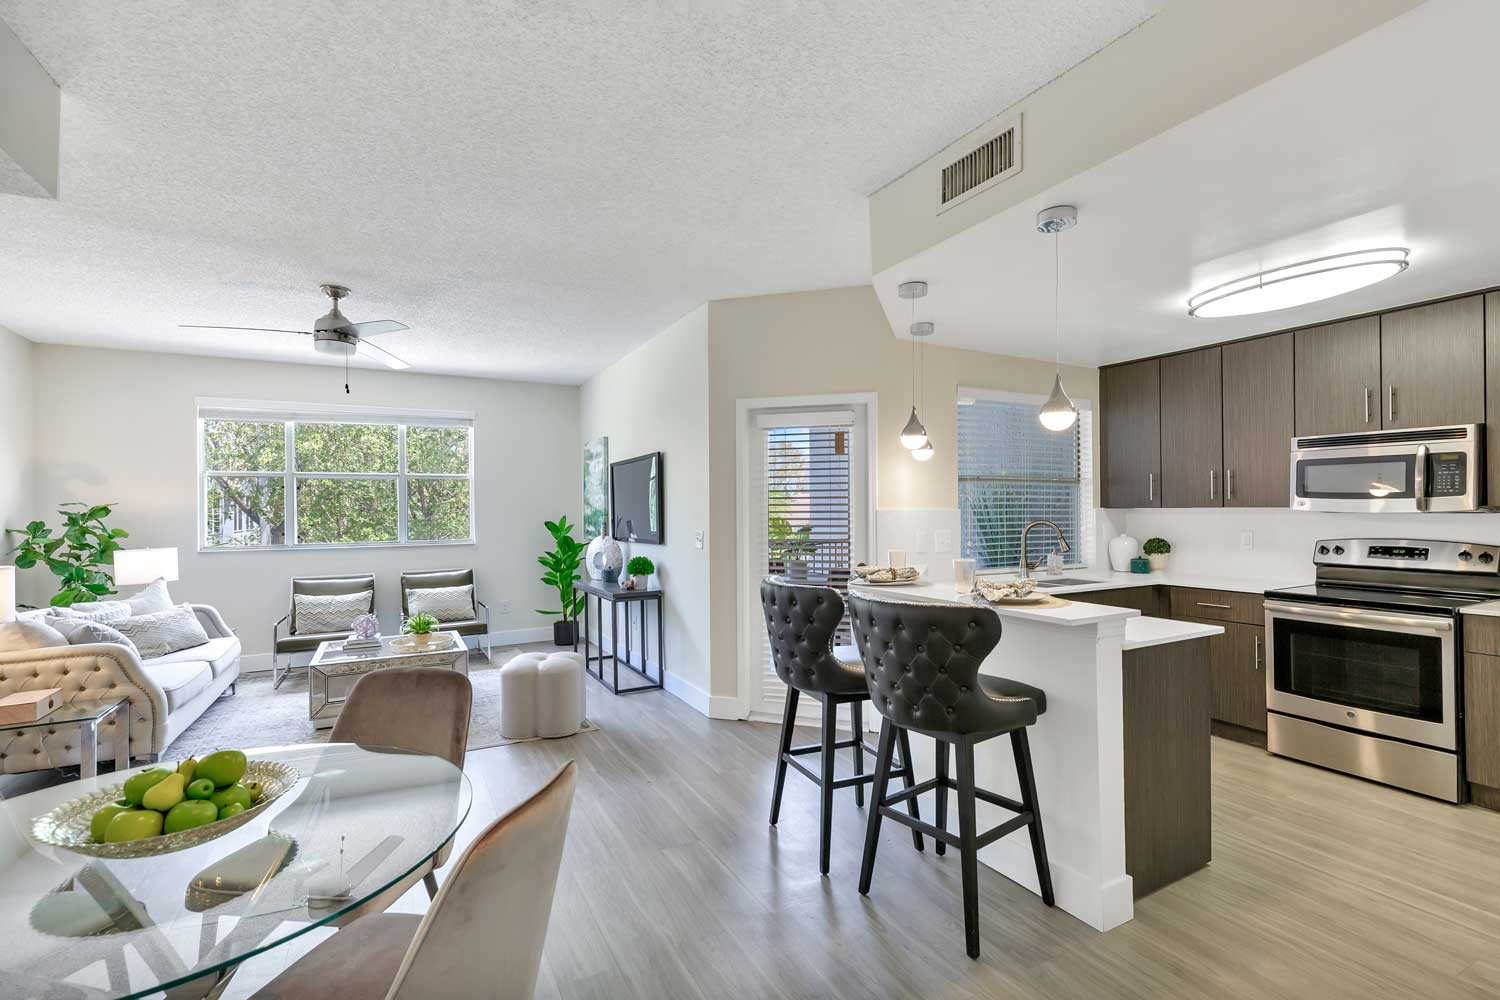 Interior at Windsor Castle Apartments in Coral Springs, Florida